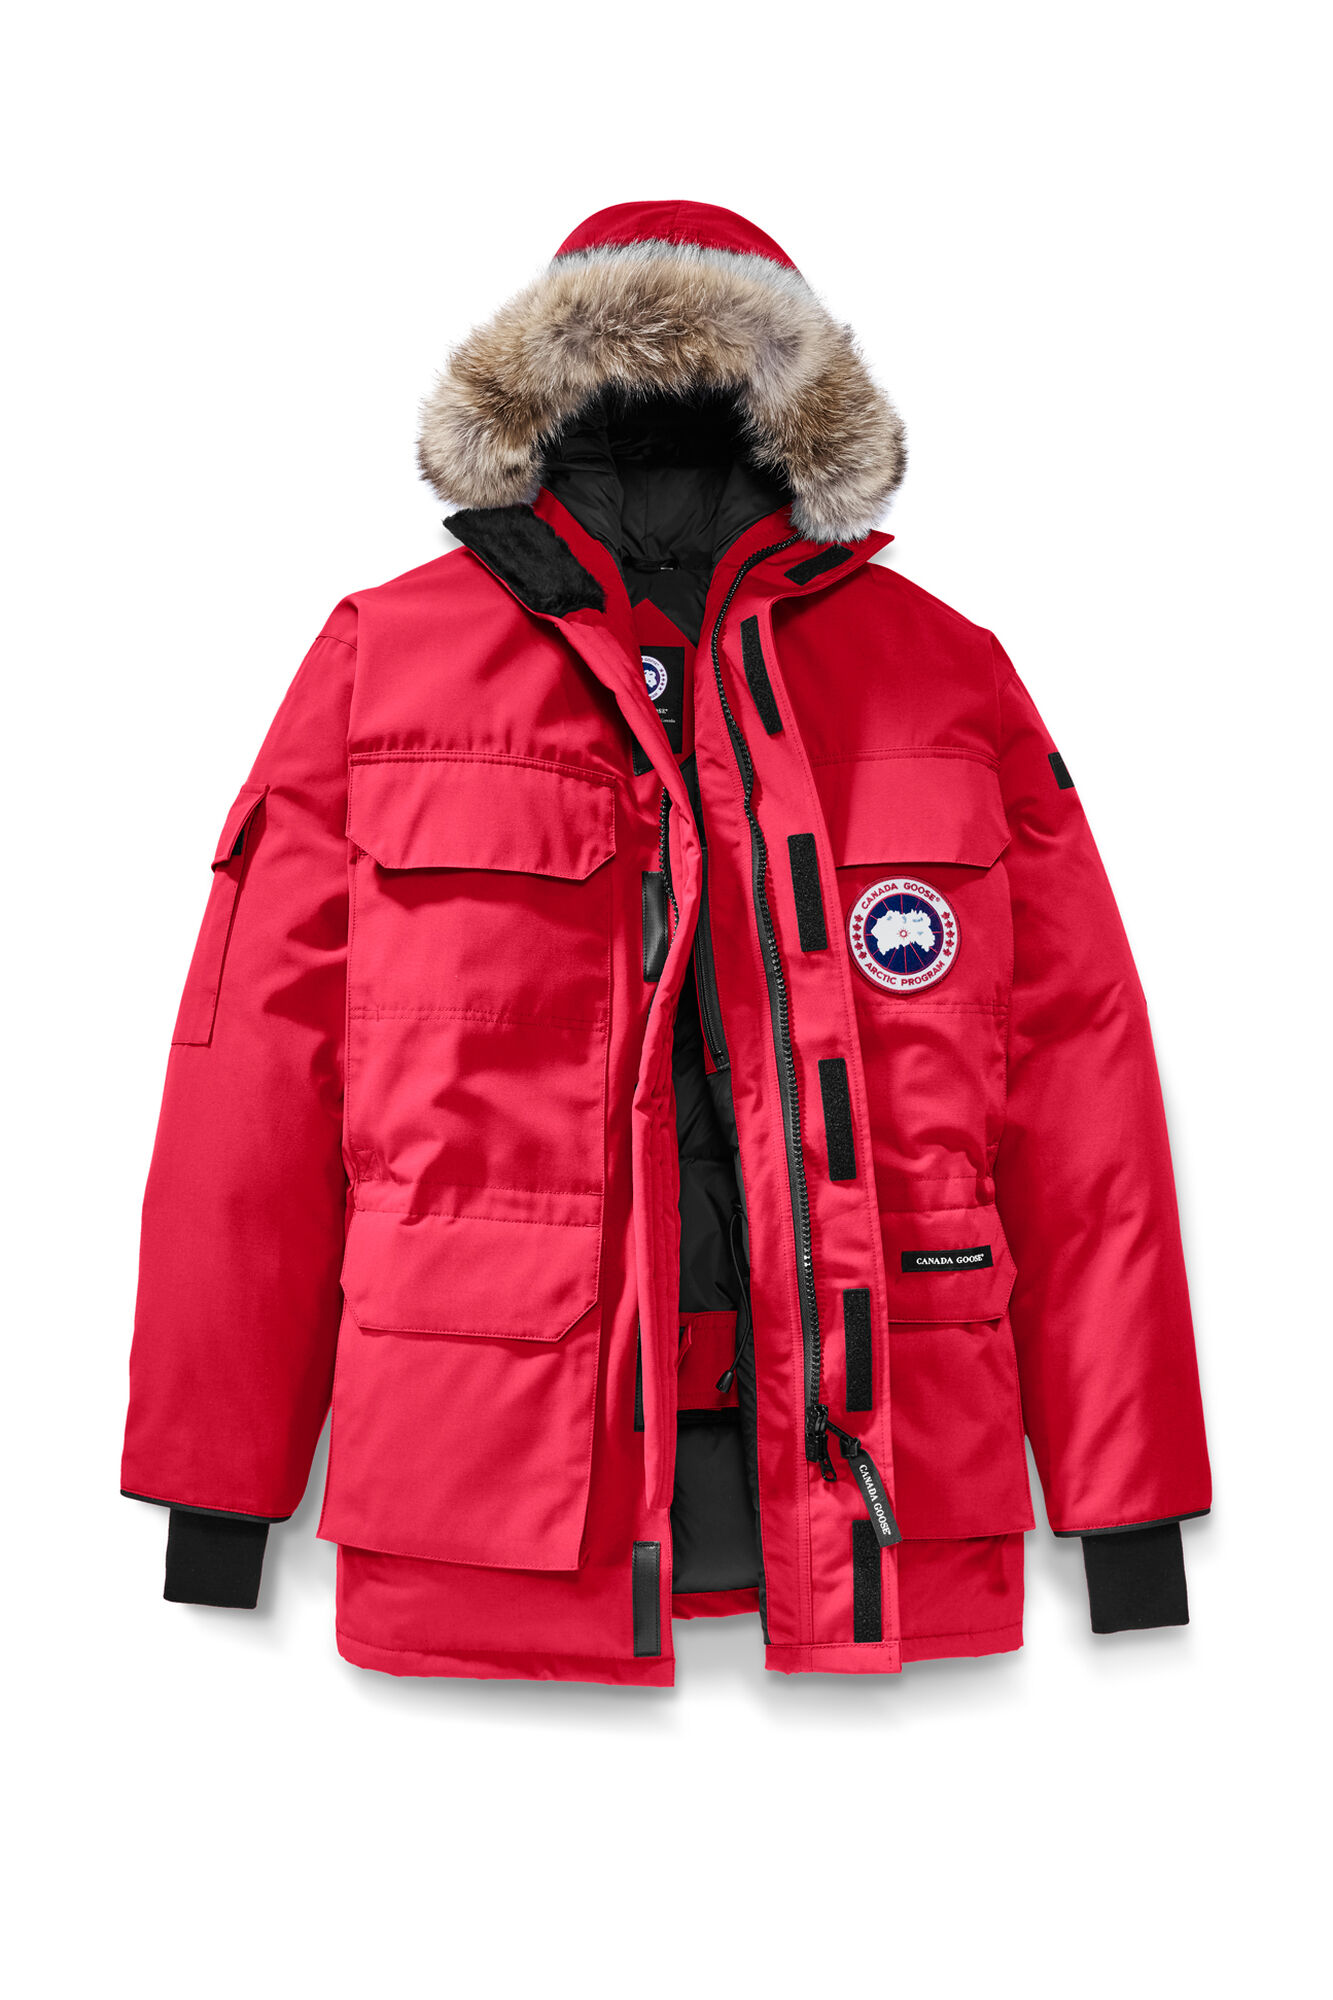 Canada Goose kensington parka sale official - Men's Arctic Program Expedition Parka | Canada Goose?